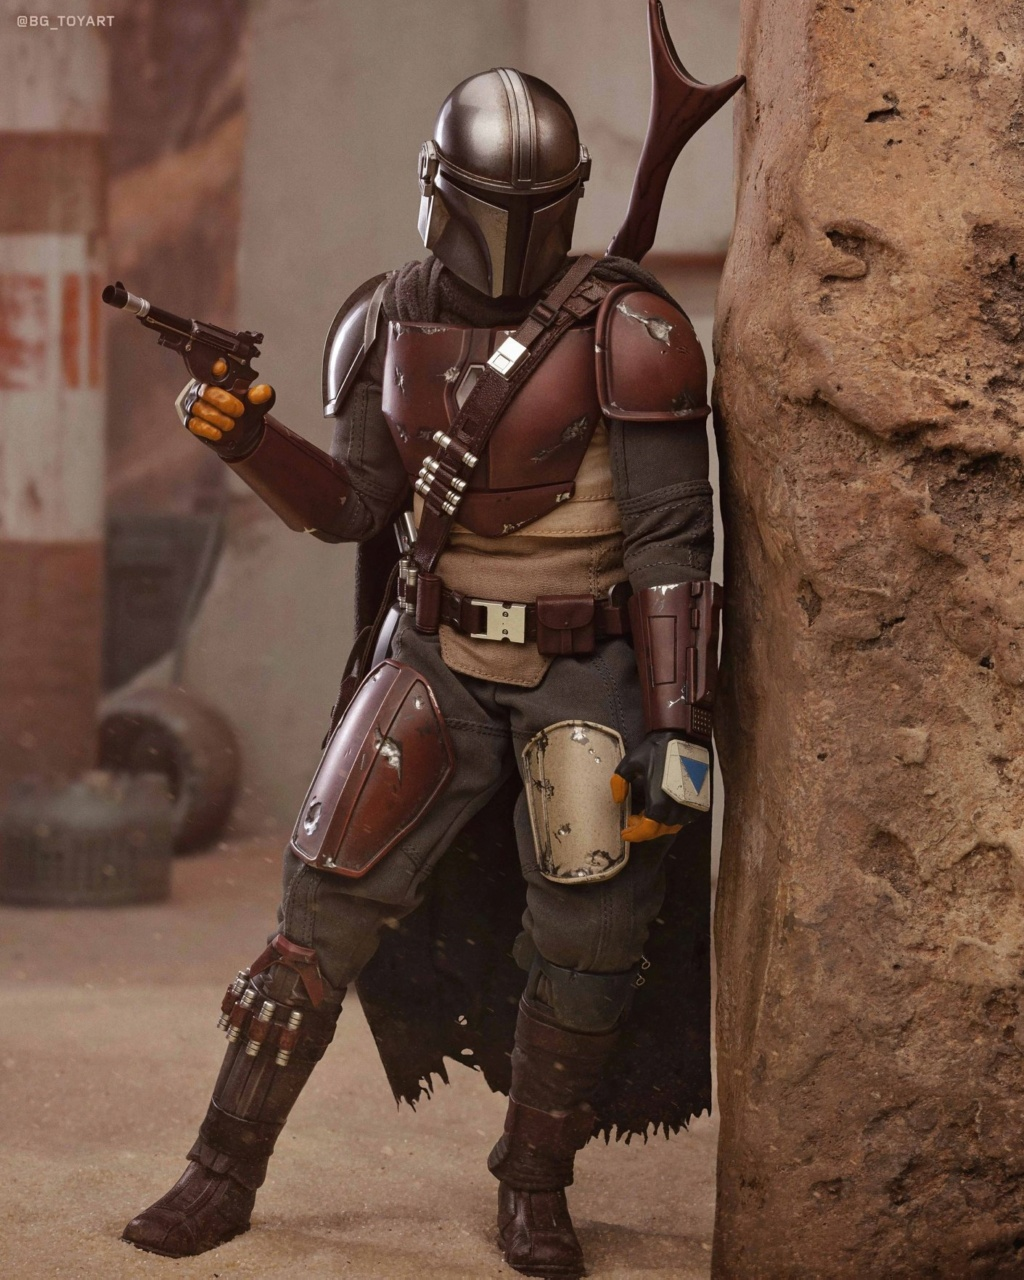 NEW PRODUCT: HOT TOYS: THE MANDALORIAN -- THE MANDALORIAN 1/6TH SCALE COLLECTIBLE FIGURE 9308